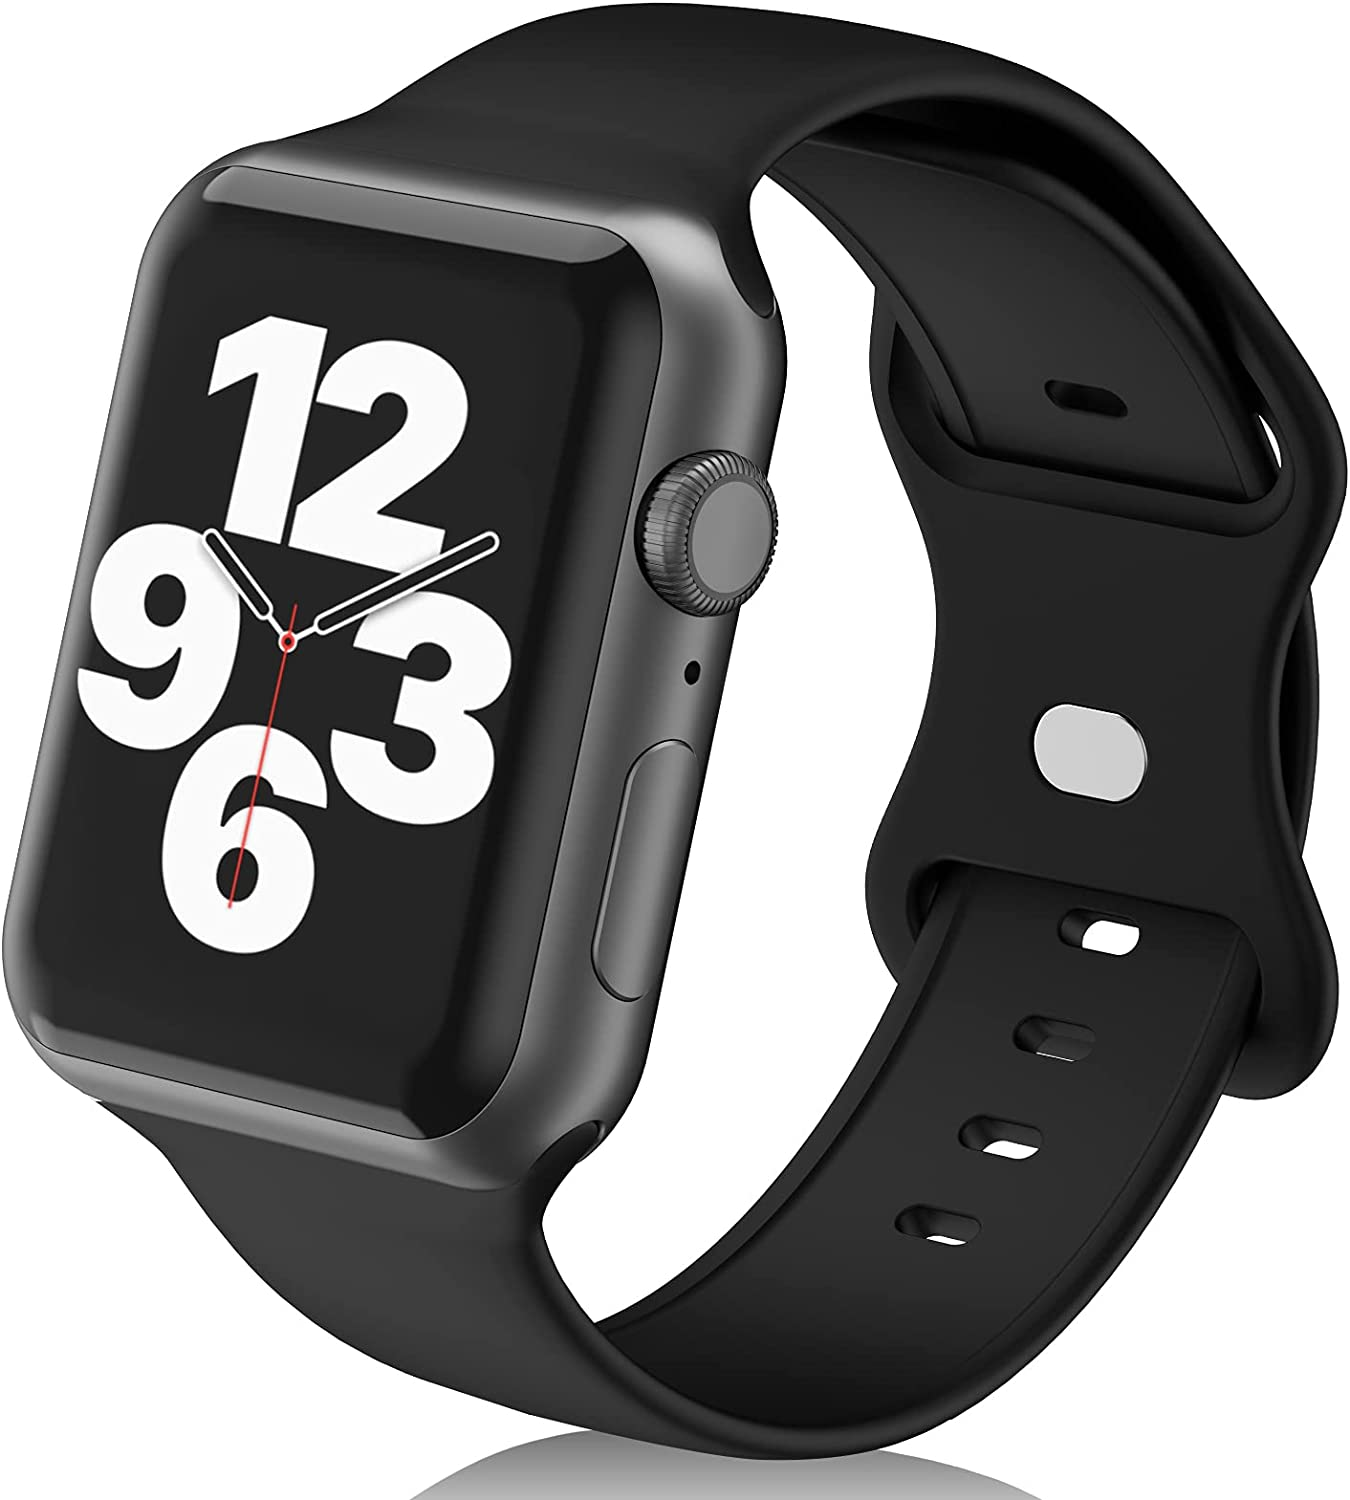 N-Hocezyg Smartwatch Bands Compatible with Apple Watch Band 42mm 44mm for Women Men Girls,Soft Silicone Sport Replacement Strap for iWatch Series 6 5 4 3 2 1 SE Wristbands